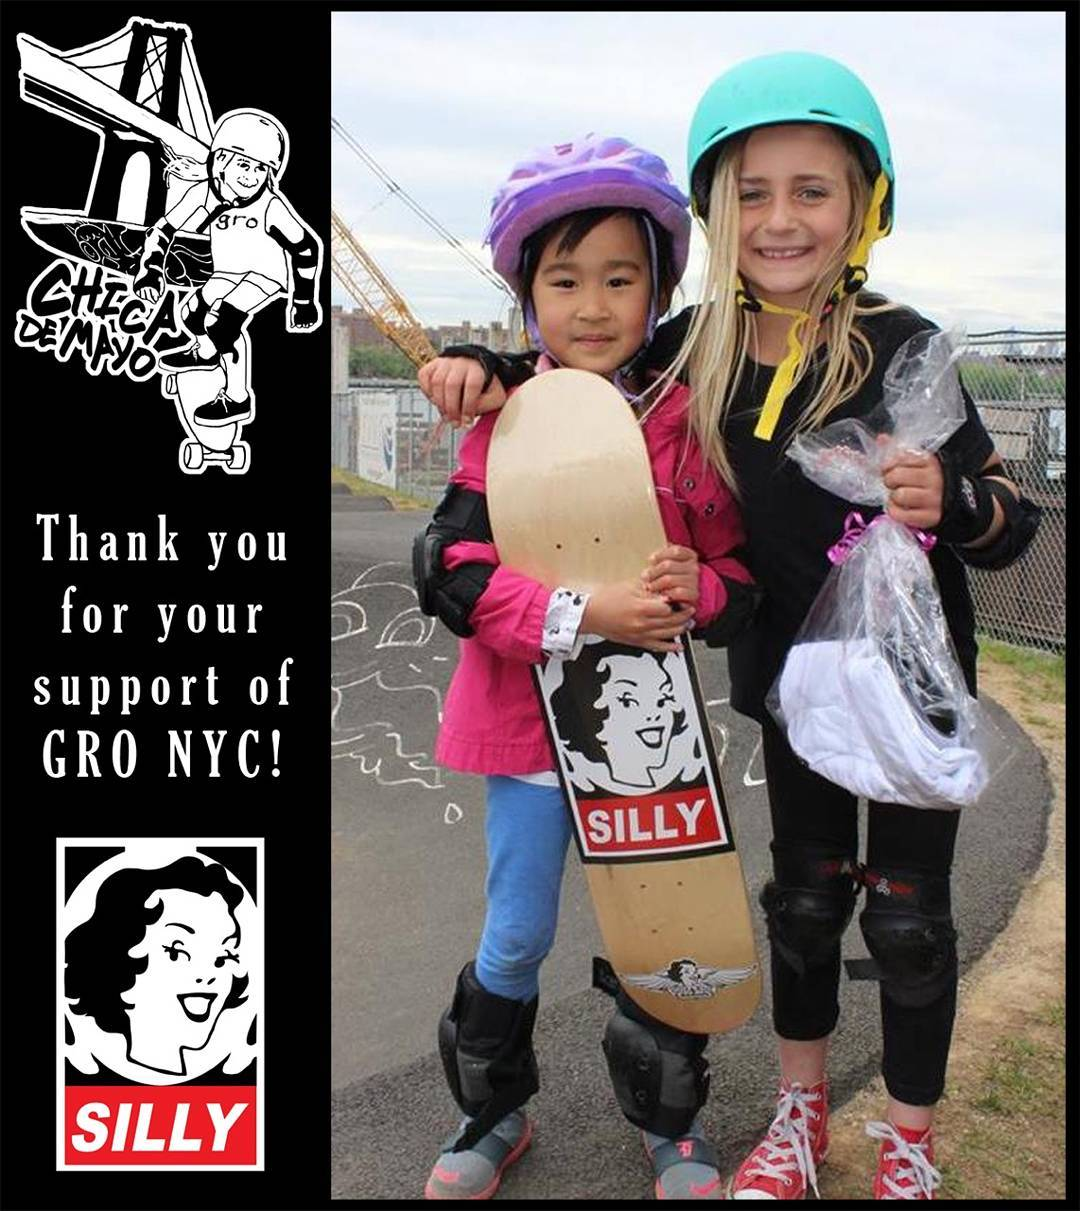 Thank you @sillygirlskateboards for your support!!! #thankyouskateboarding #ridetrue #youcanGROwithus #youCANshredwithus #girlsridersorg